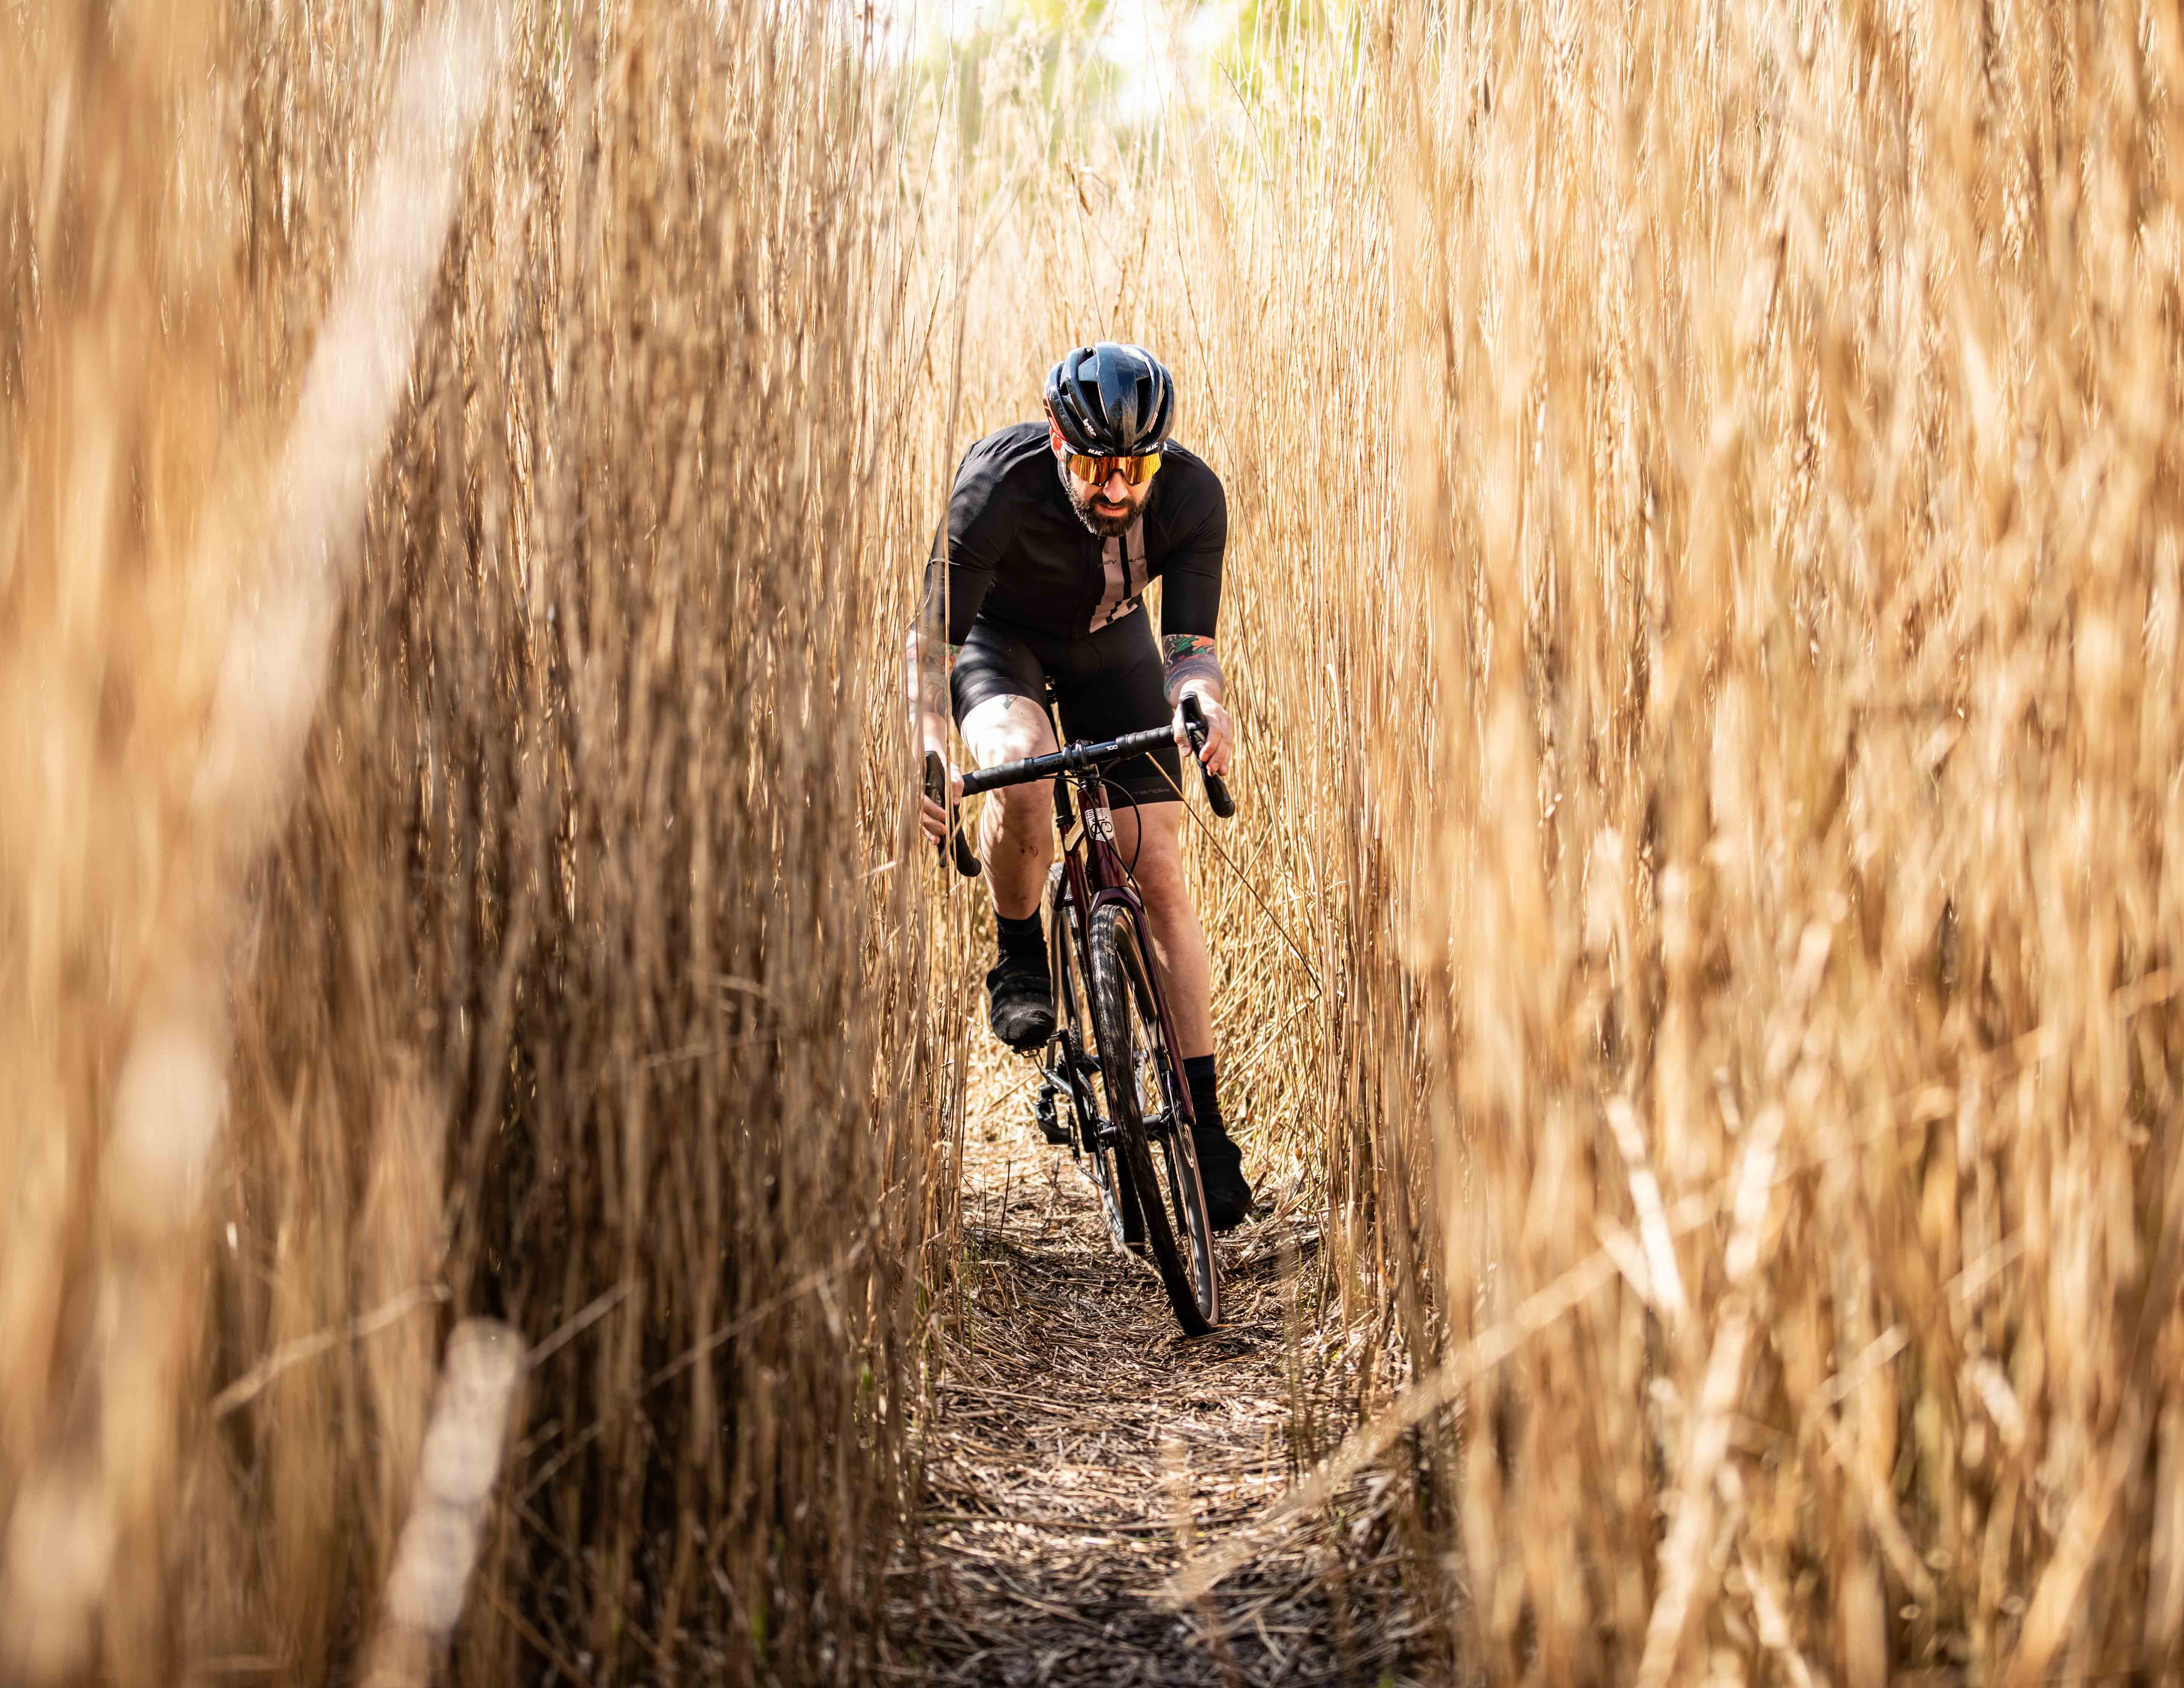 Discovering new spots with the MyCorsa gravel bike.